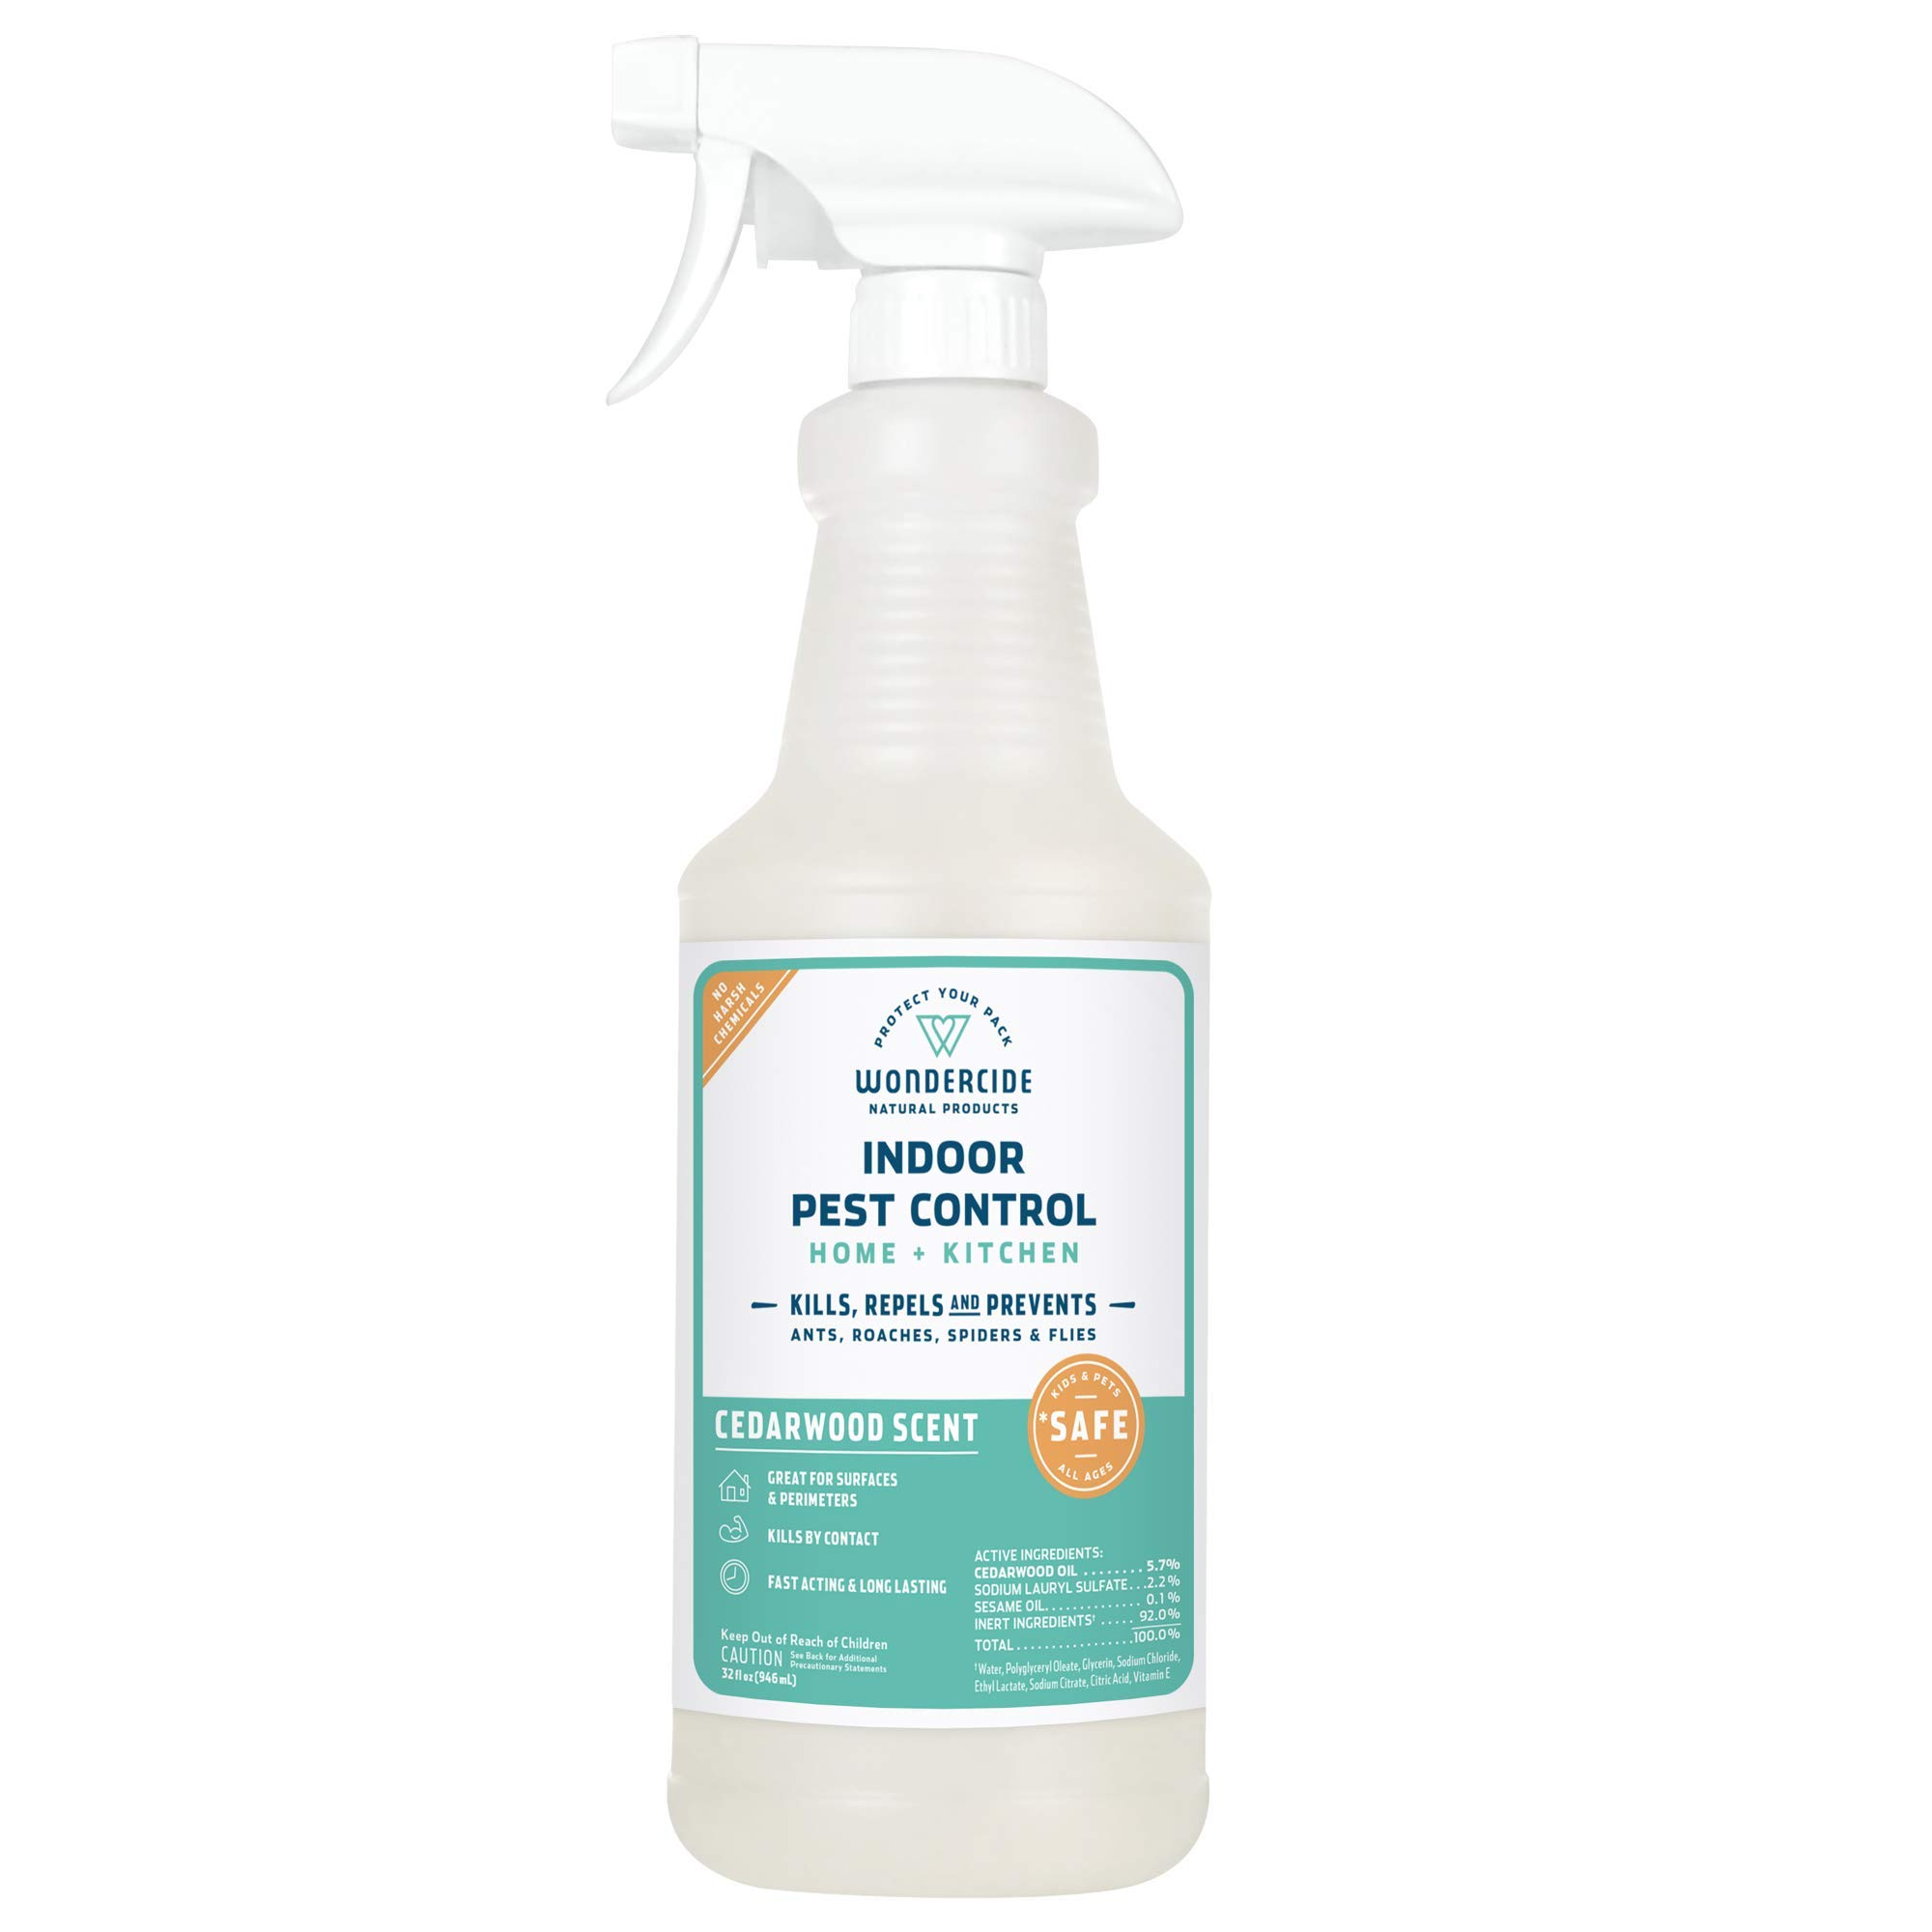 Wondercide Natural Indoor Pest Control Spray for Home and Kitchen - Fly, Ant, Spider, Roach, and Bug Killer and Repellent - 32 oz Cedarwood by Wondercide